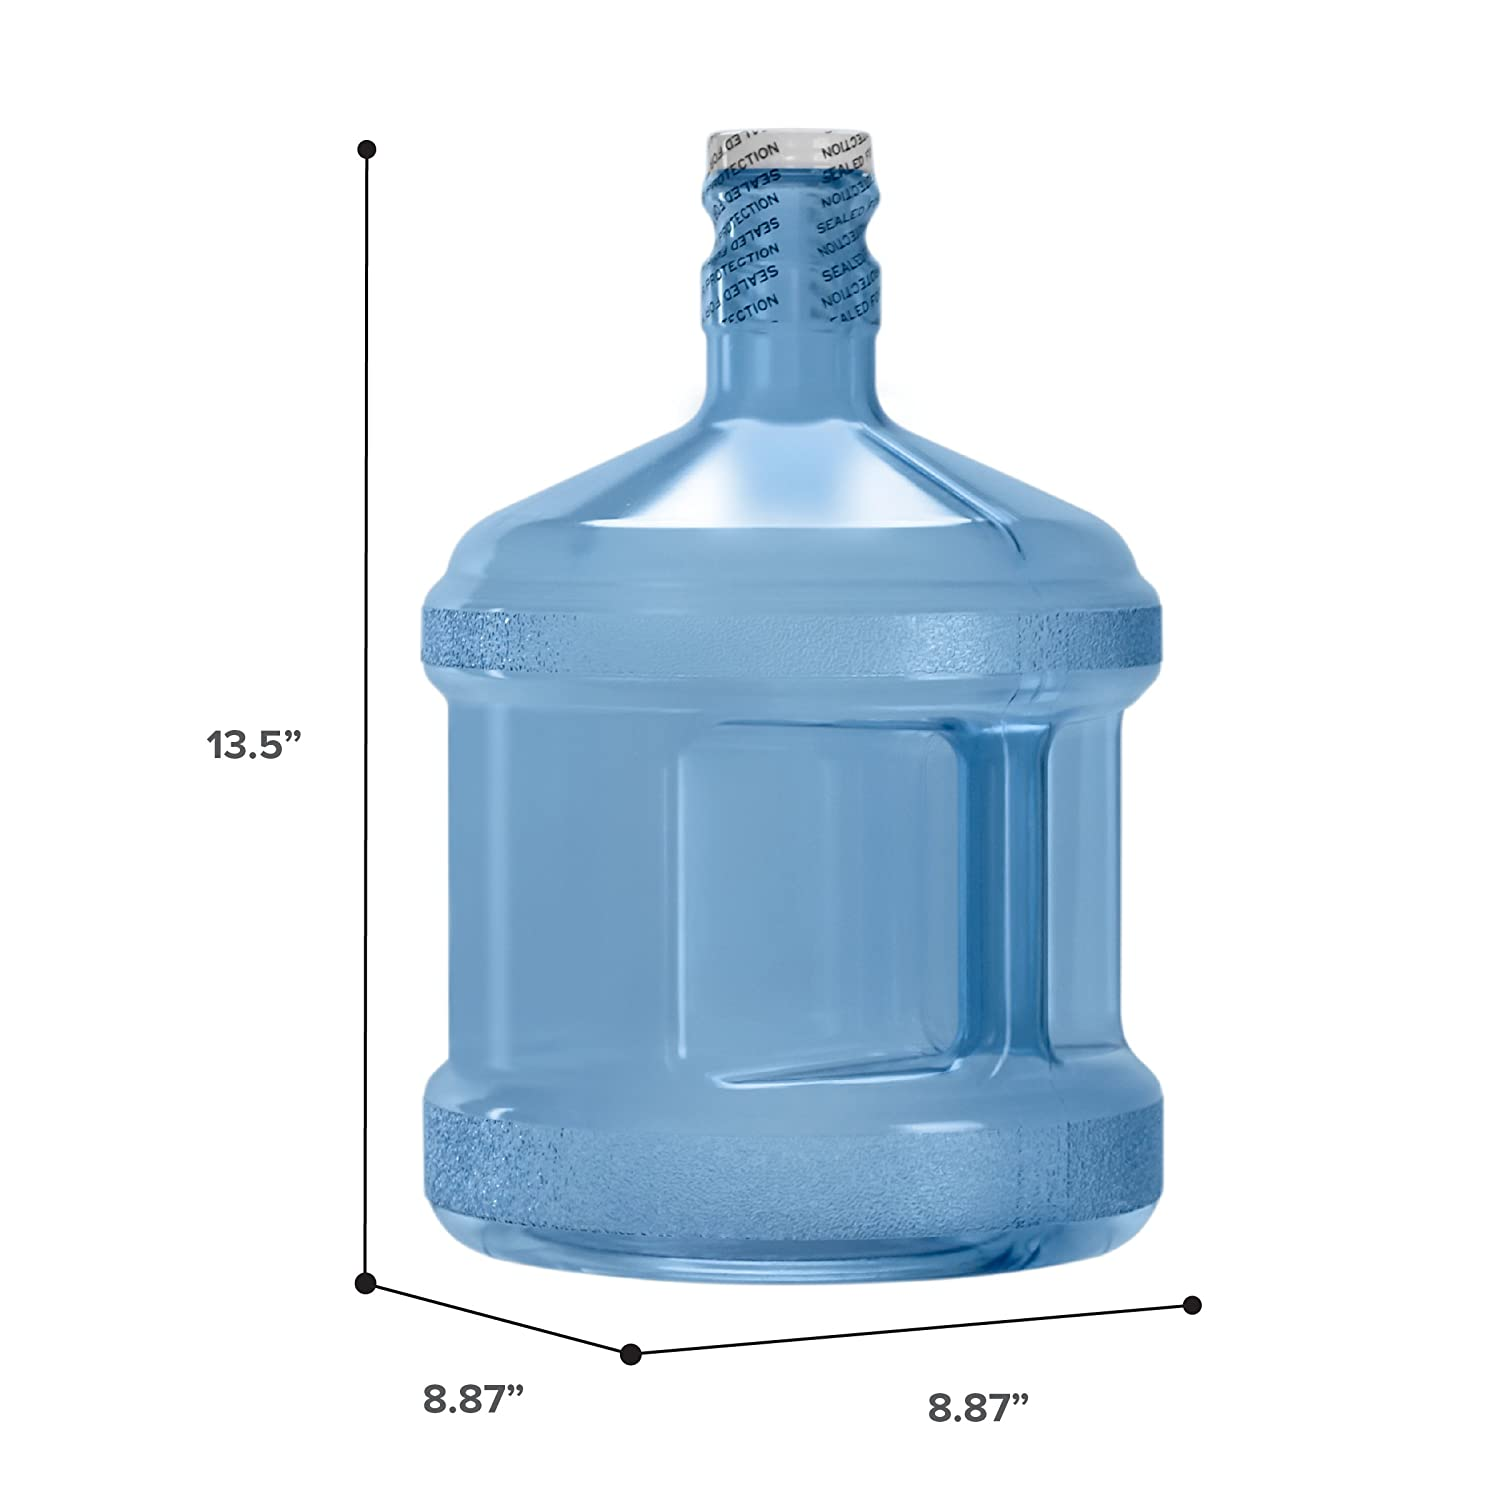 BPA-Free Reusable Plastic Water Bottle Gallon Jug Container - Made in USA